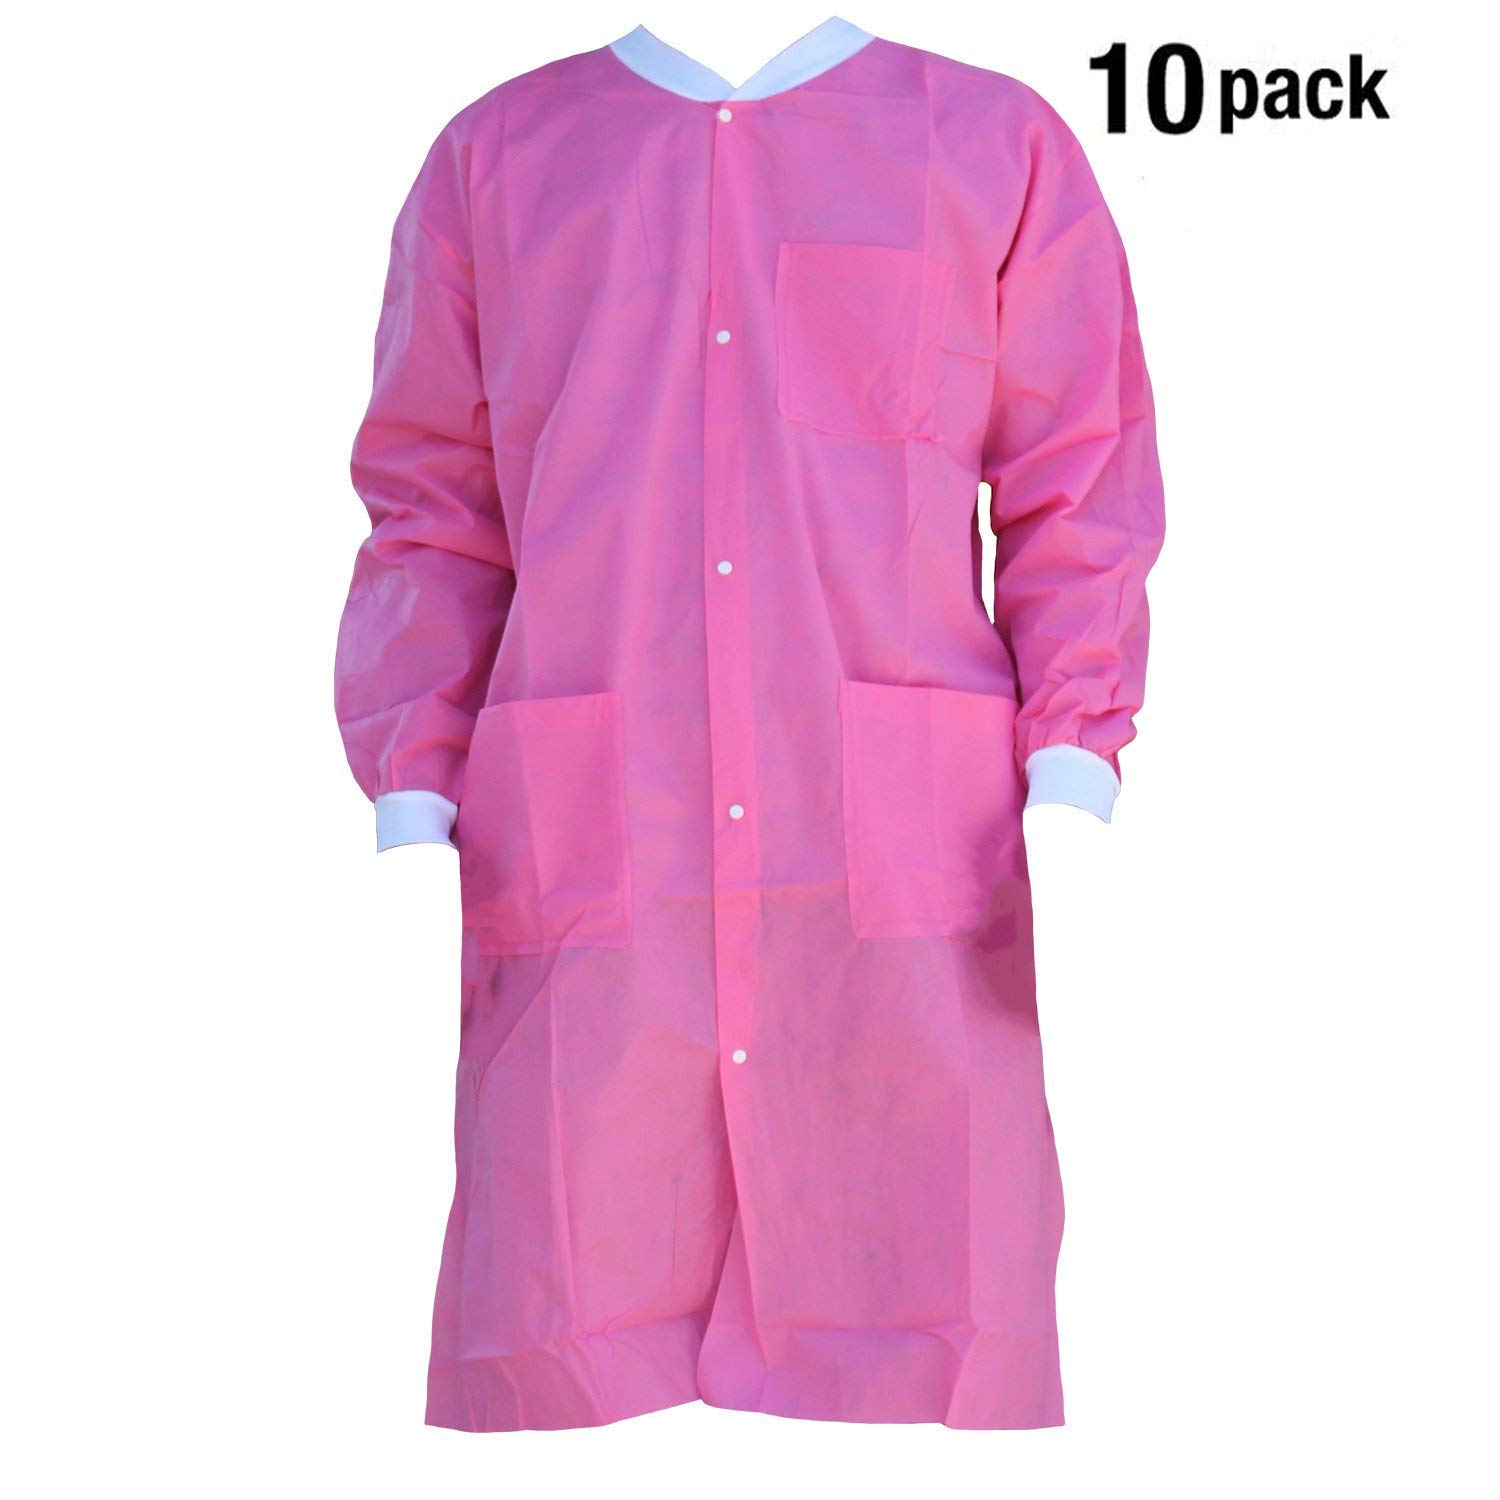 Premium Quality SMS Coat for Medical Professionals, Made of SMS Soft Fabric 3 Layer, Lab SMS Coat Static Free, Latex Free, Pack of 10, (Large, Pink)